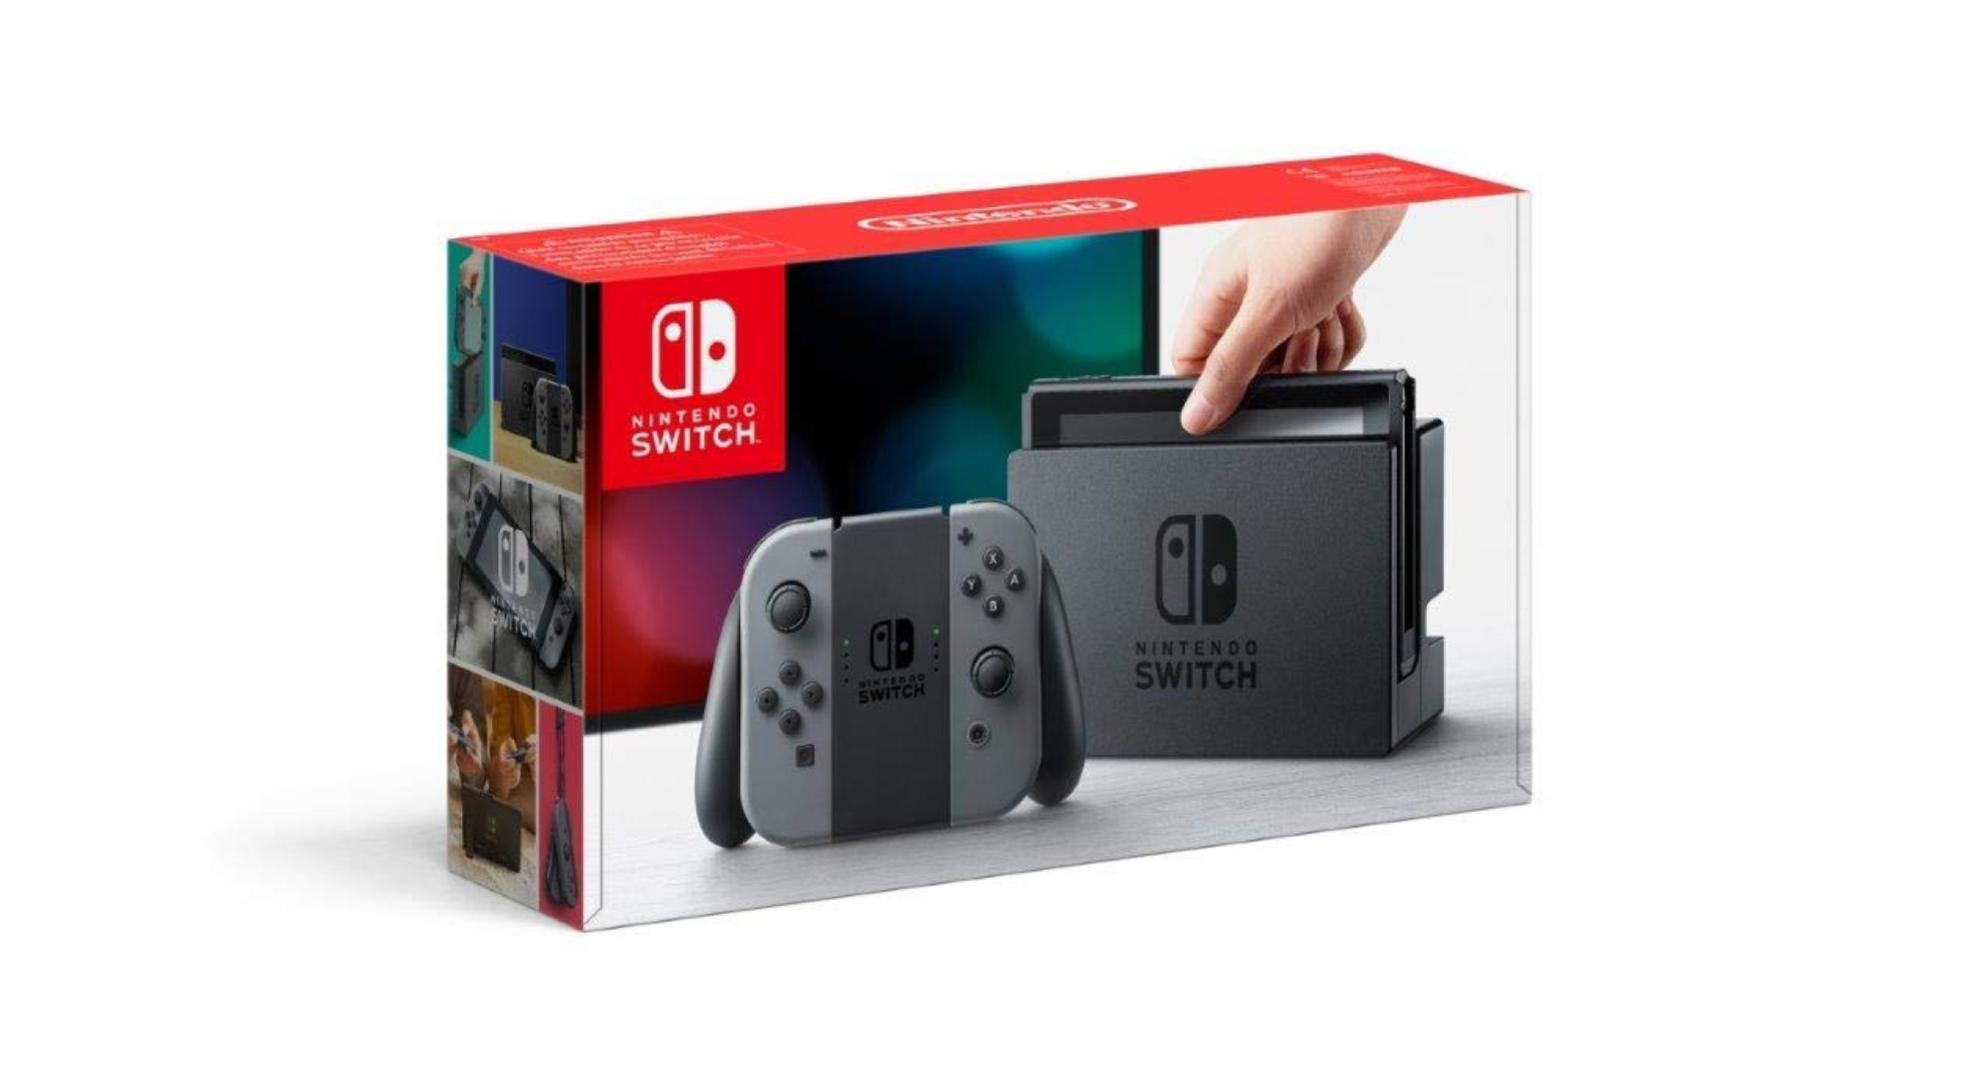 🔥 Bon plan : la console Nintendo Switch tombe à 275 euros sur Amazon